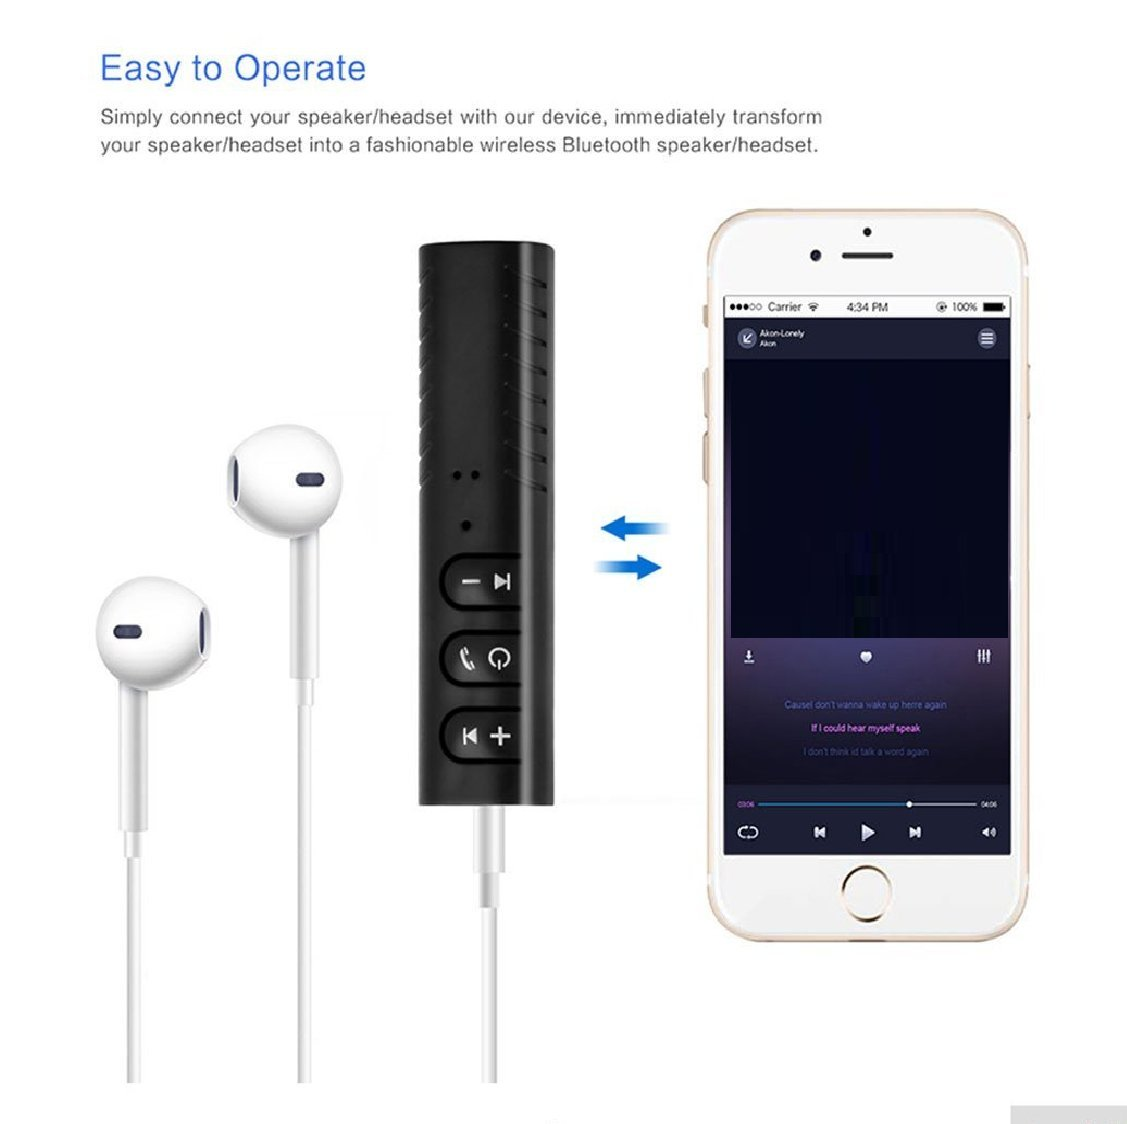 NeeGo 3.5mm AUX Wireless Bluetooth 4.2 Earbuds Headphones Receiver Adapter for Home Stereo System for Car AUX Speaker,